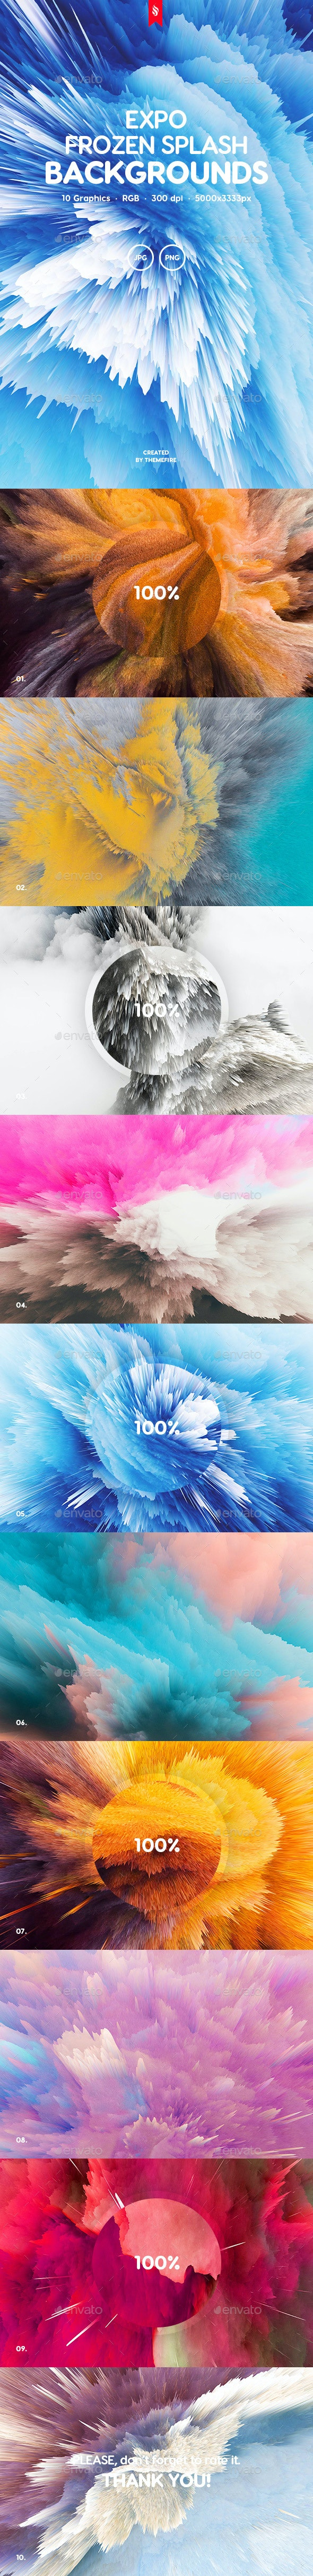 Expo - Frozen Splash Backgrounds - Tech / Futuristic Backgrounds